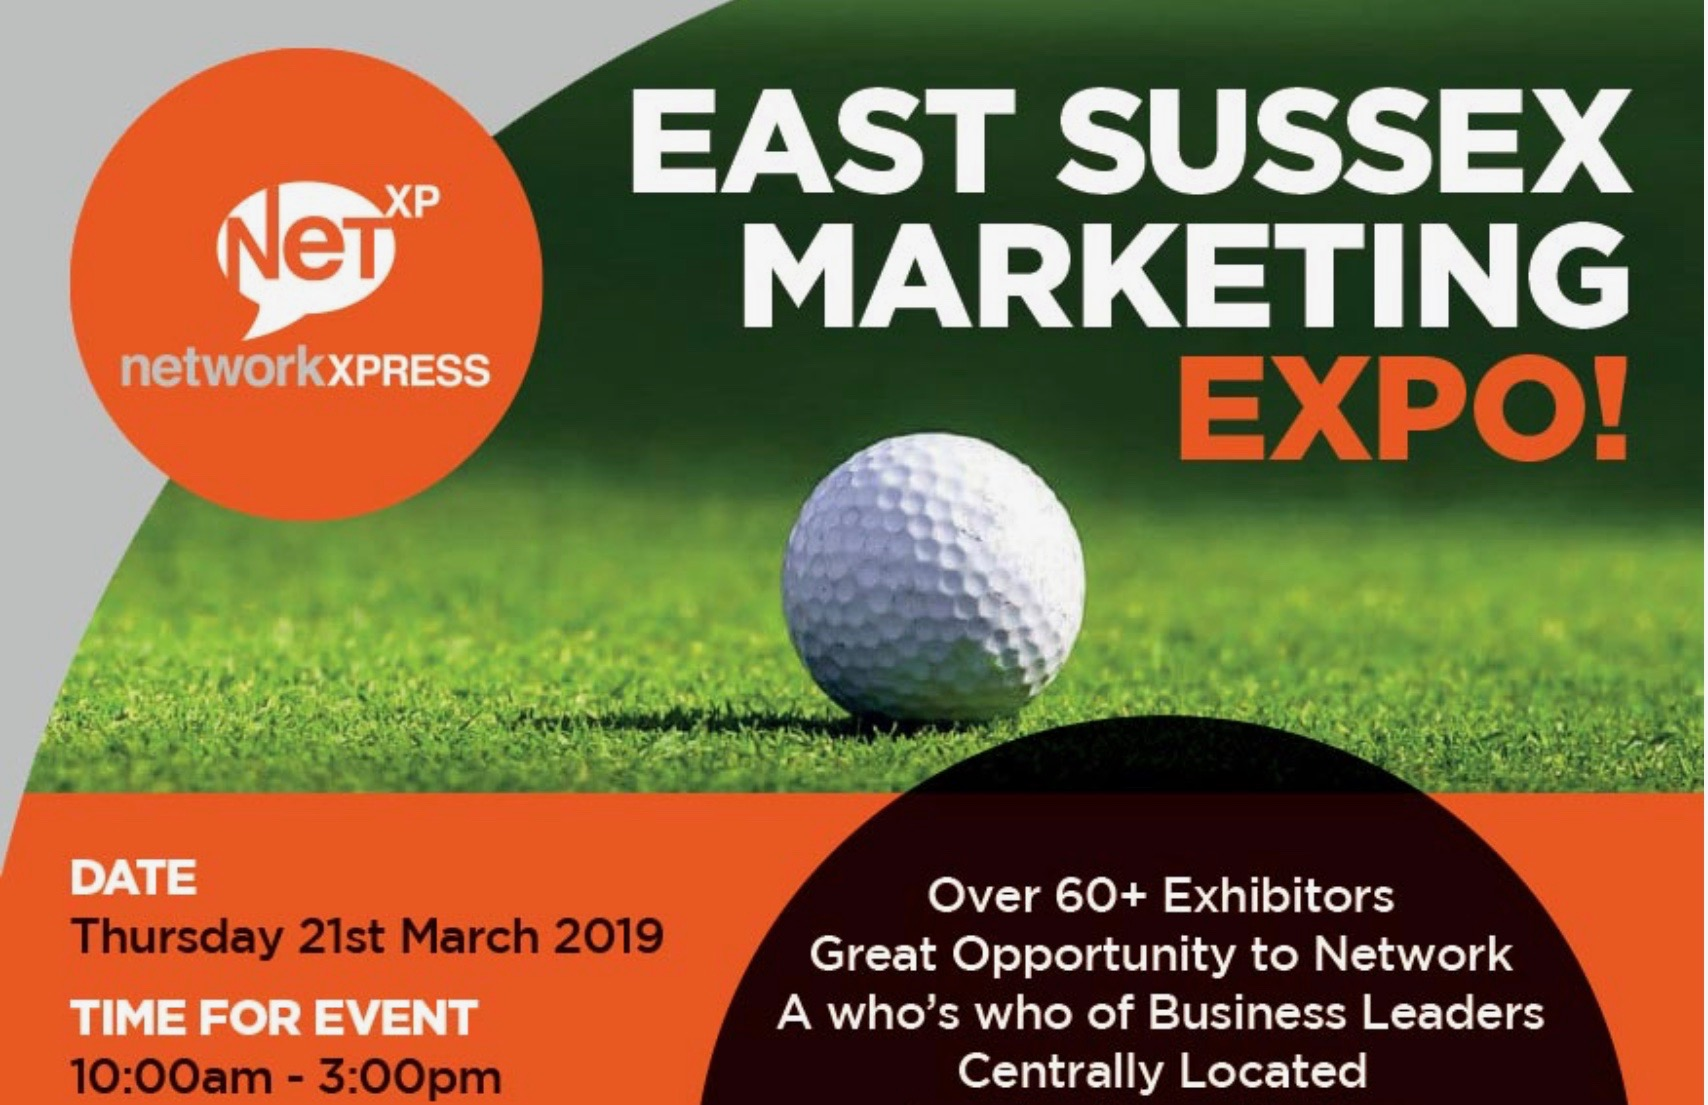 East Sussex expo